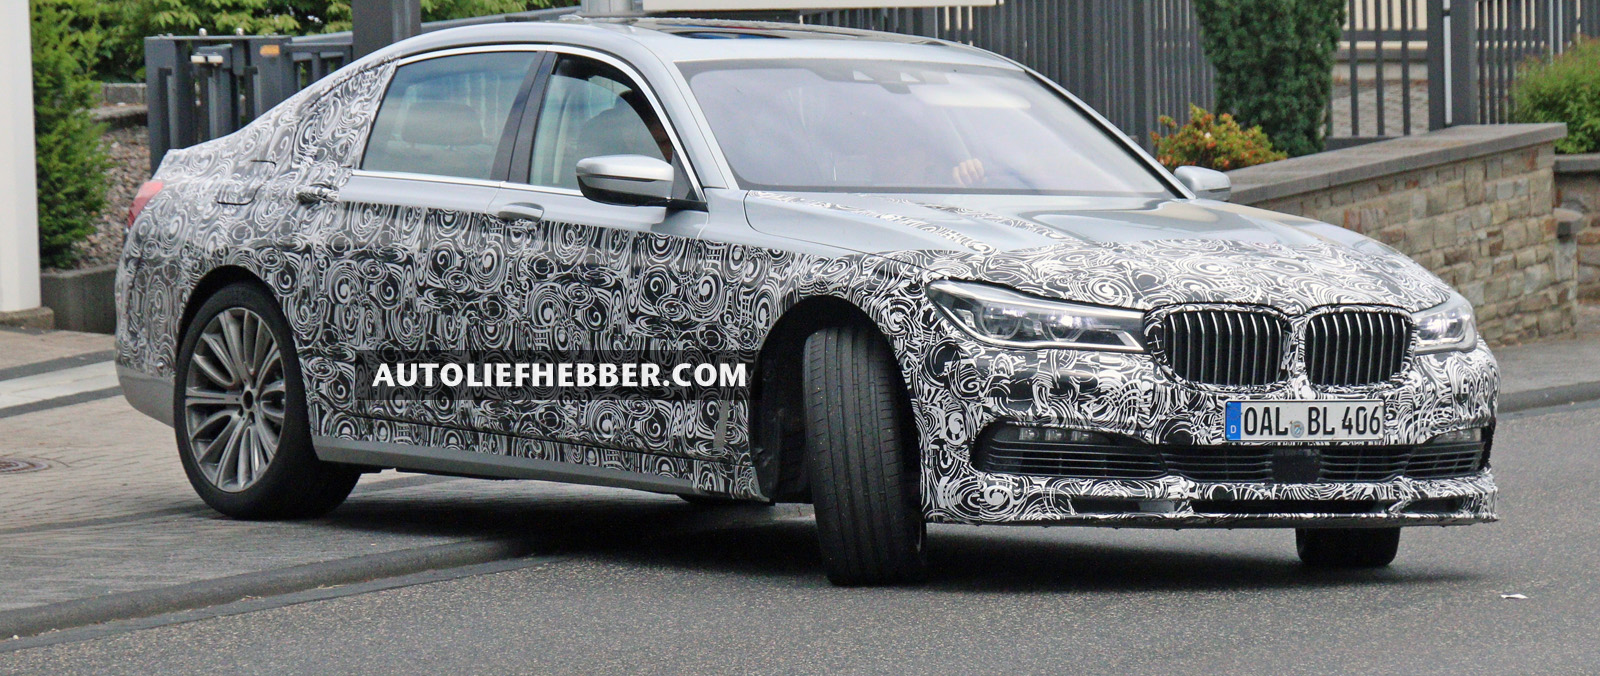 Alpina B7 in laatste testfase